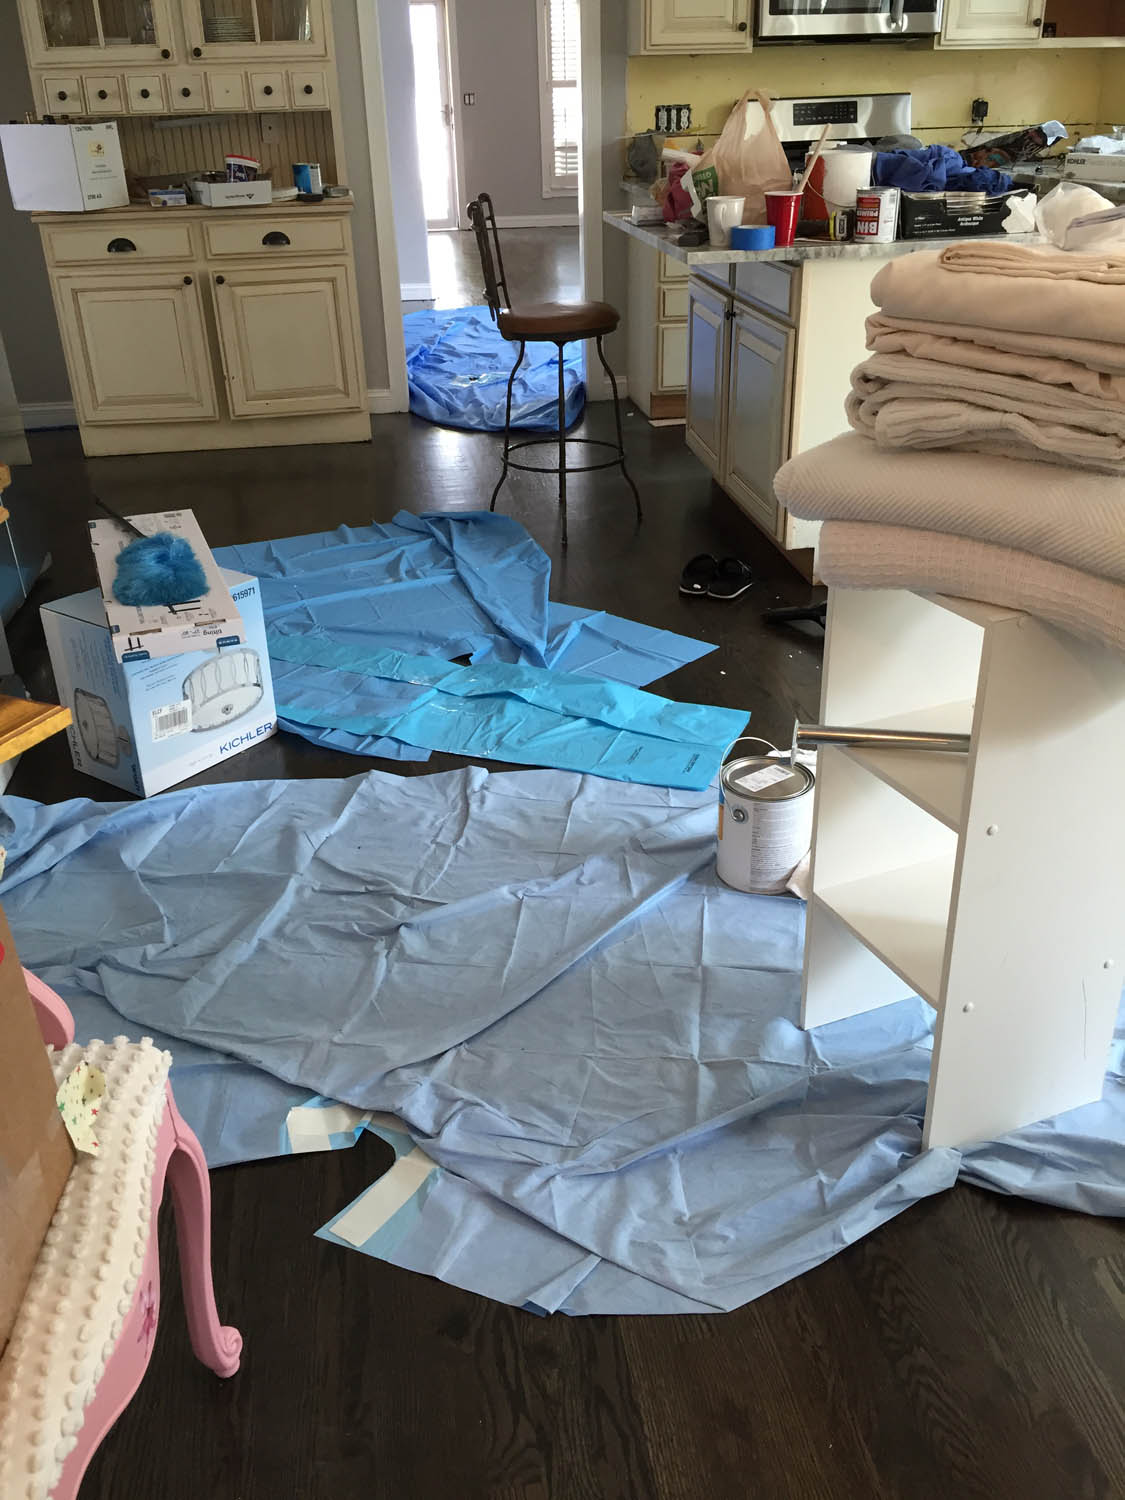 Several remodel projects at the same time, and always keeping the newly dark-stained floors covered.